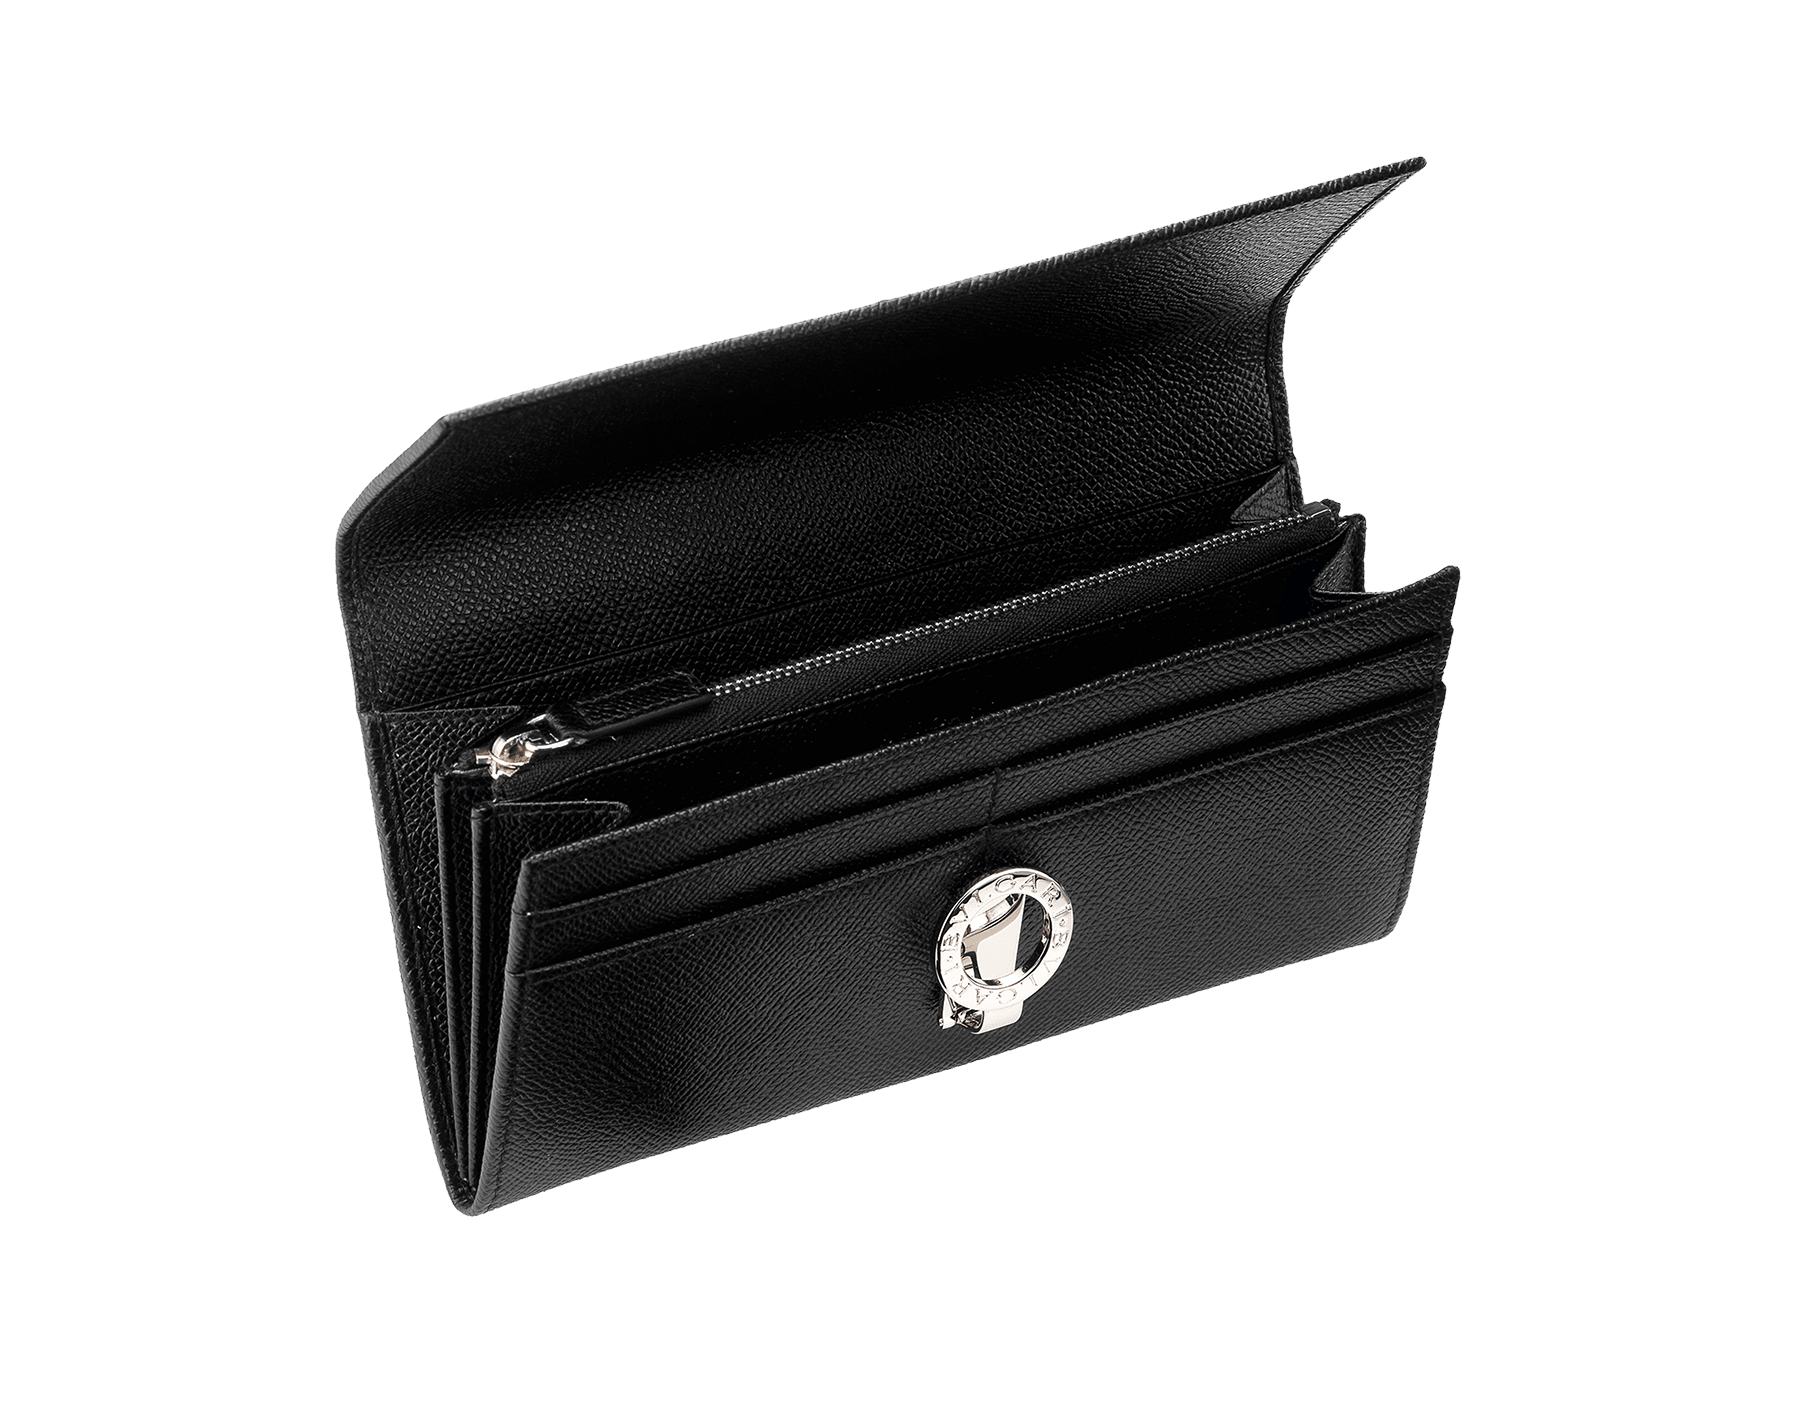 Woman wallet pochette 2 gussets & 10CC with clip,Grain leather black/Palladium, Lining 100% Leather royal 30414 image 2